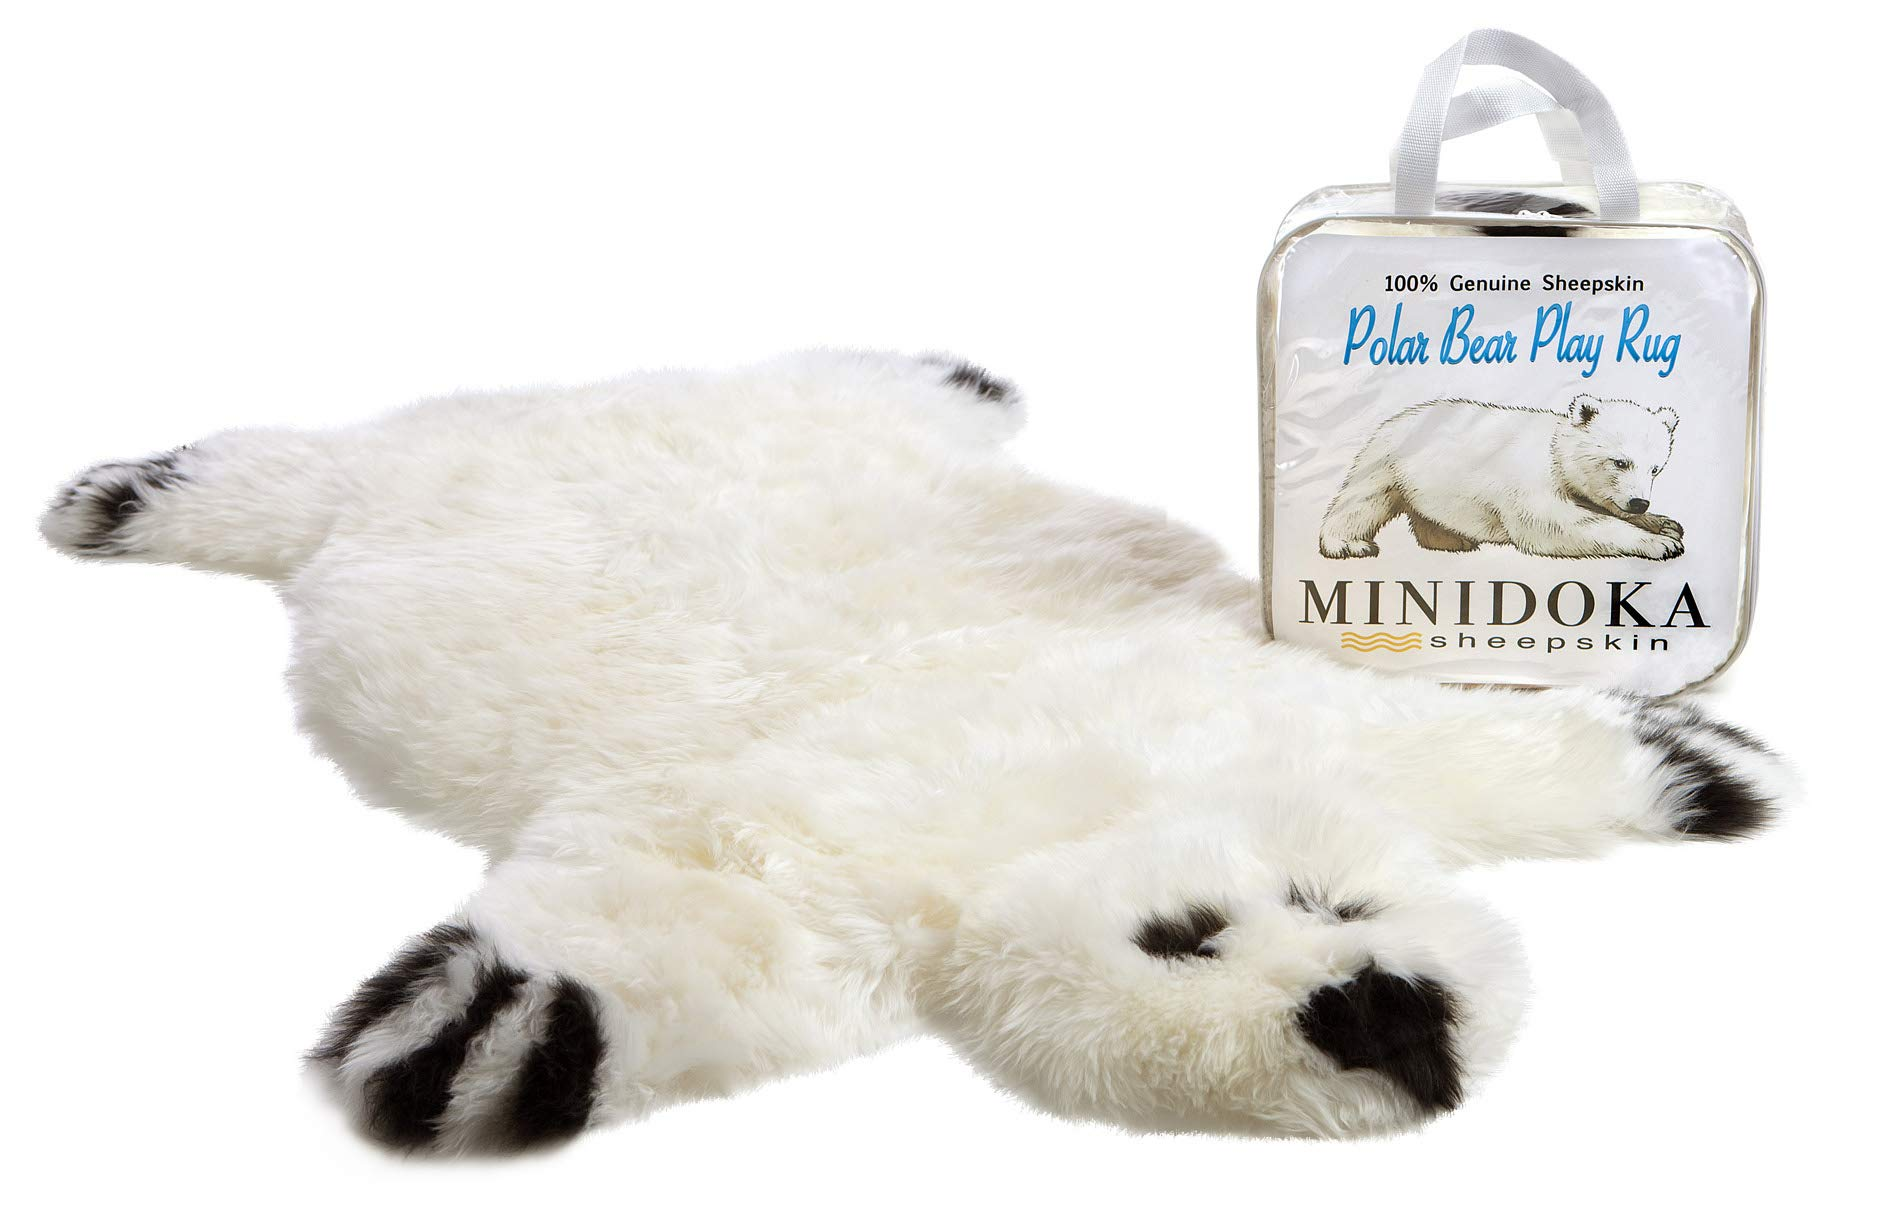 Genuine Sheepskin Polar Bear Play Rug by Minidoka Sheepskin